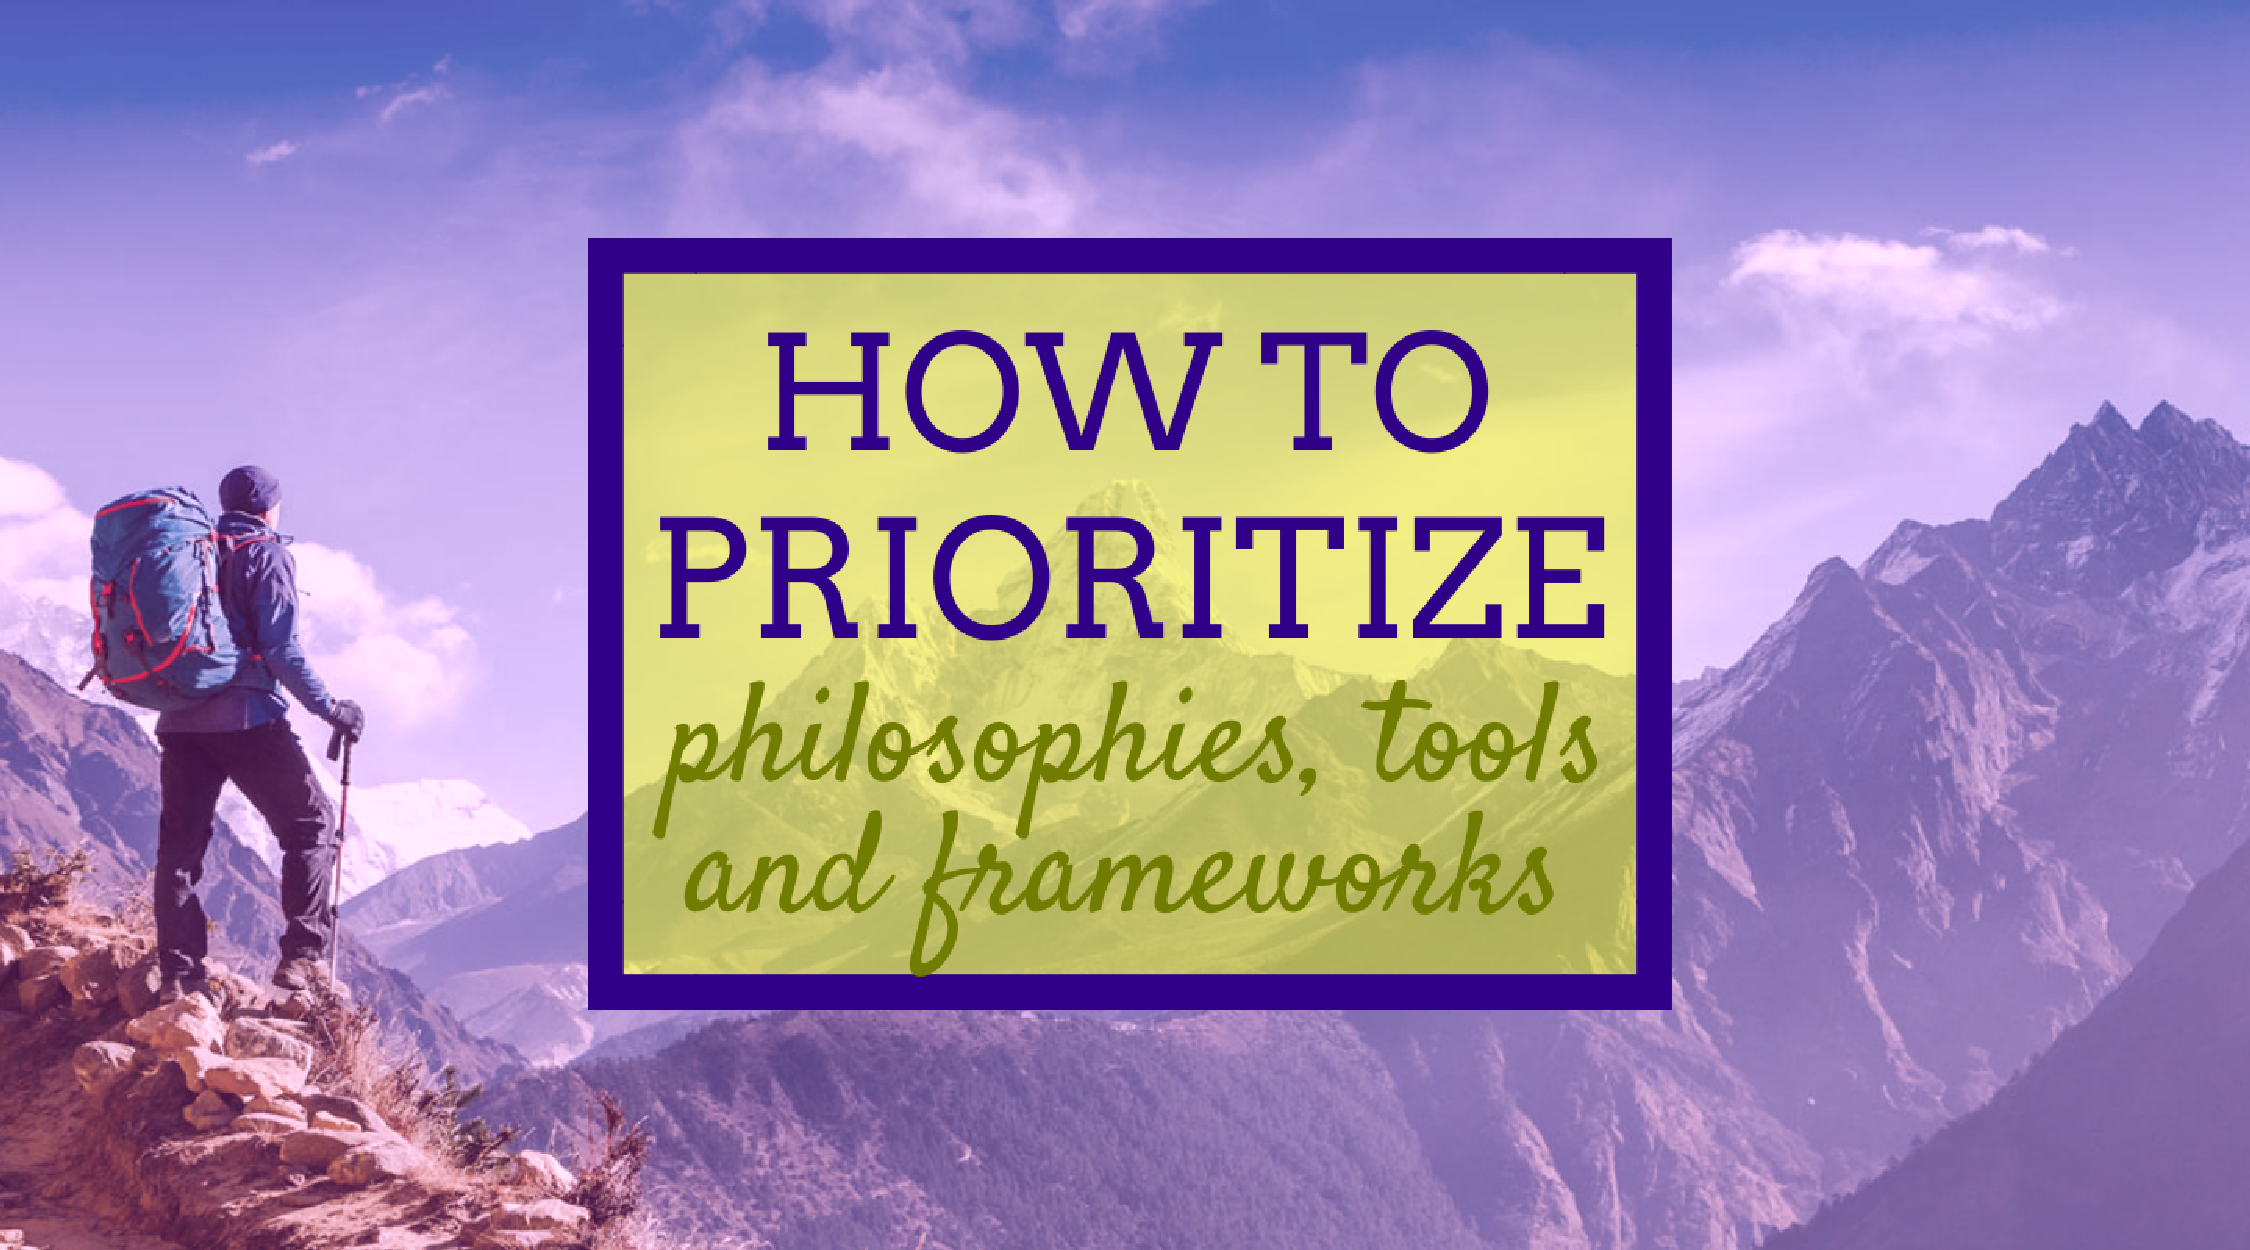 How to Prioritize - synonyms, frameworks, tools and philosphies